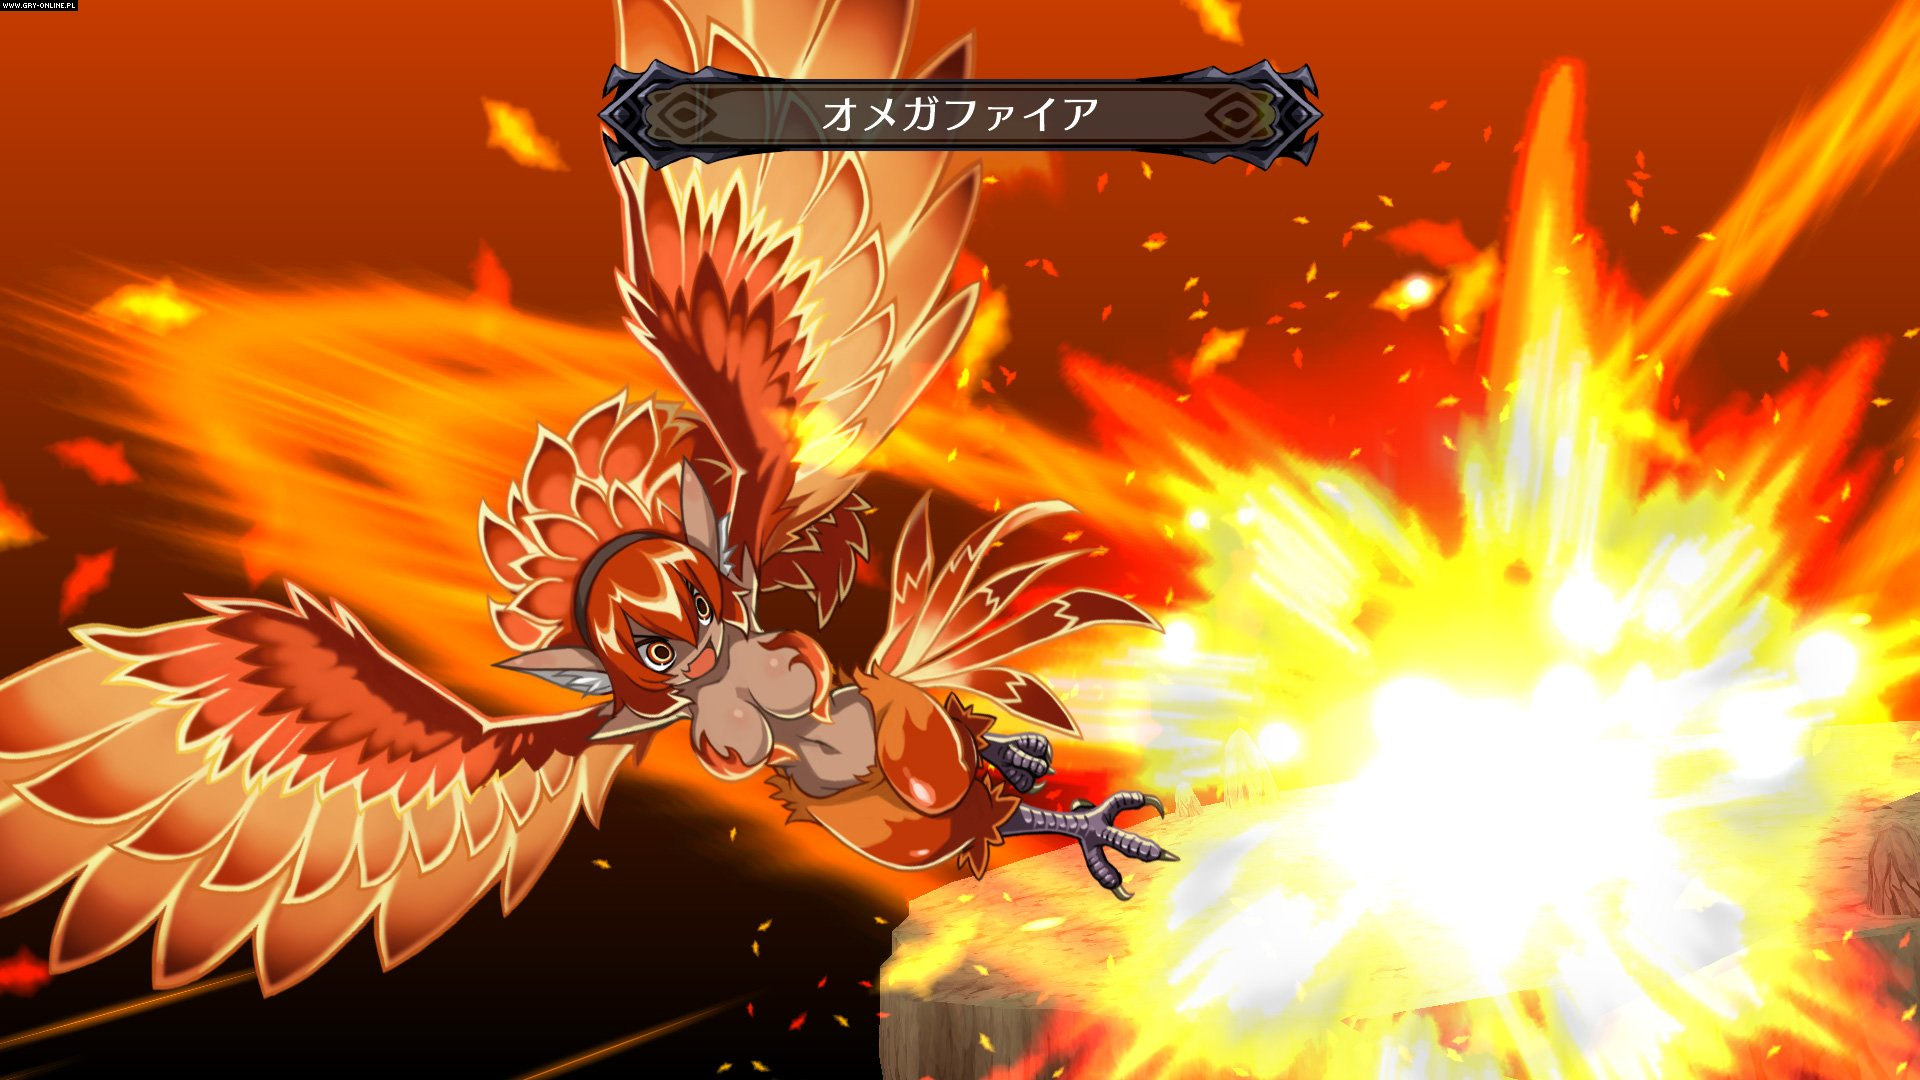 Disgaea 5: Alliance of Vengeance PS4, Switch Games Image 13/40, Nippon Ichi Soft., NIS America